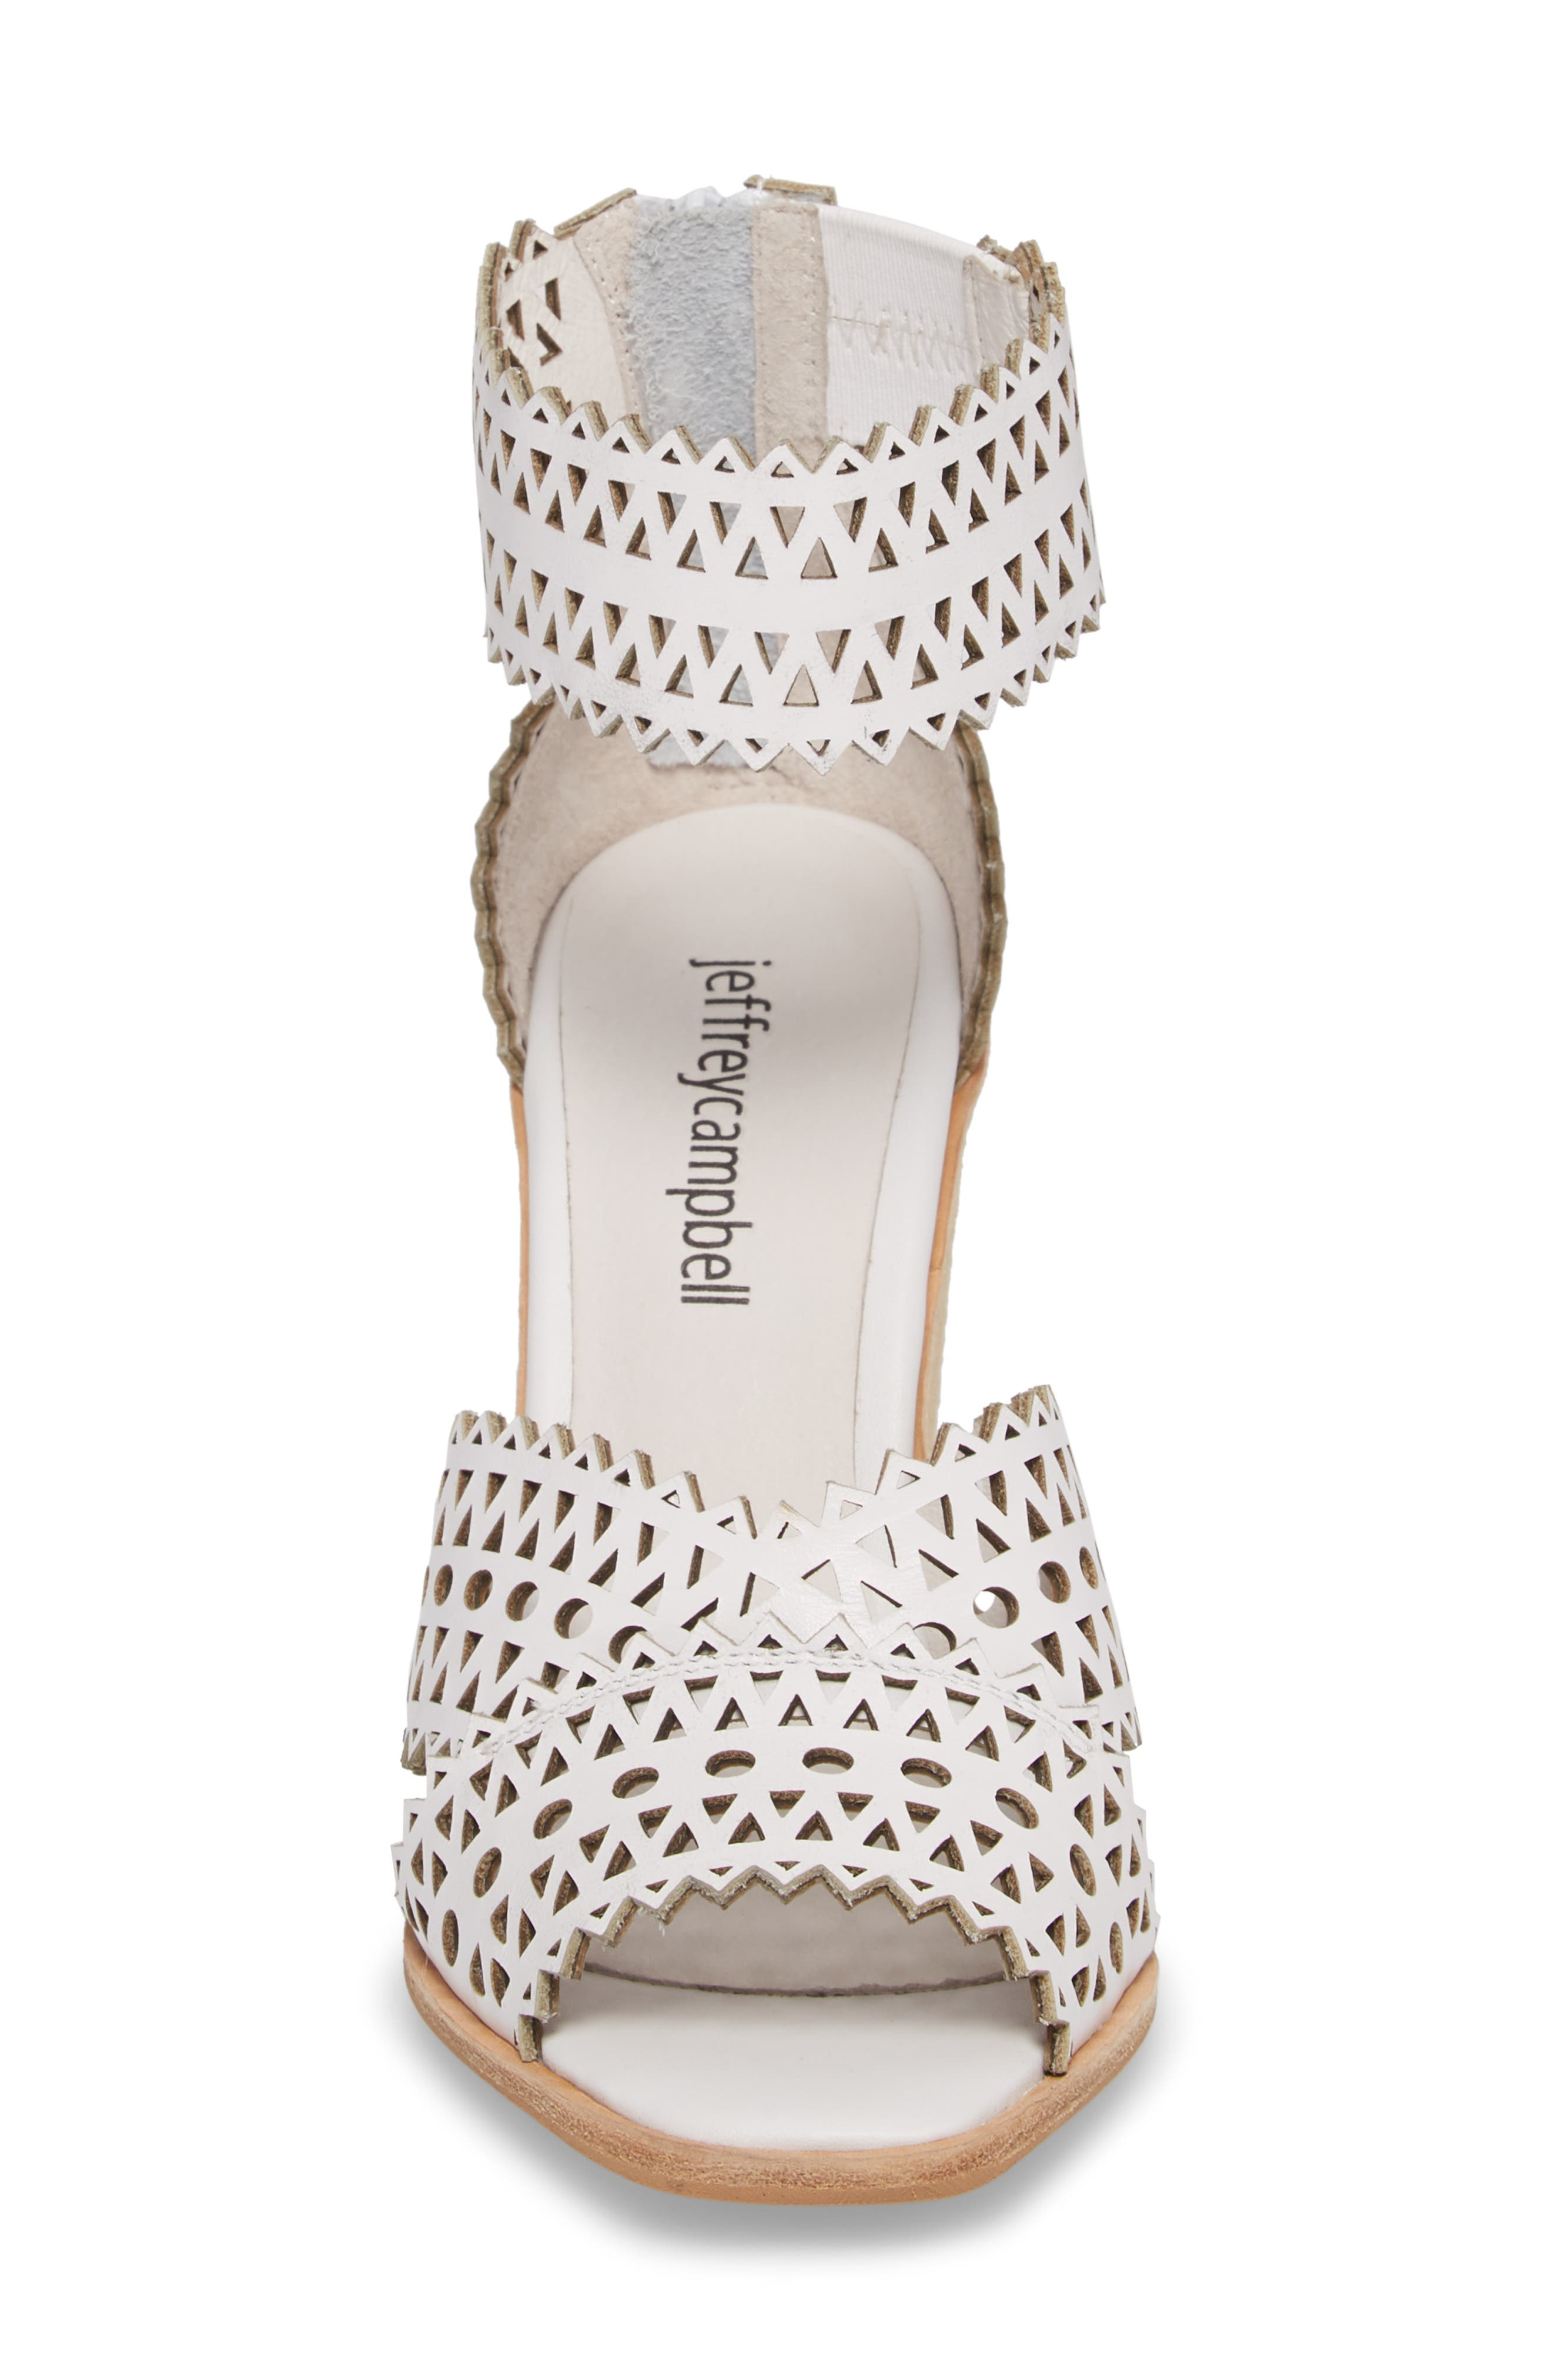 Besante Perforated Wedge Sandal,                             Alternate thumbnail 4, color,                             White